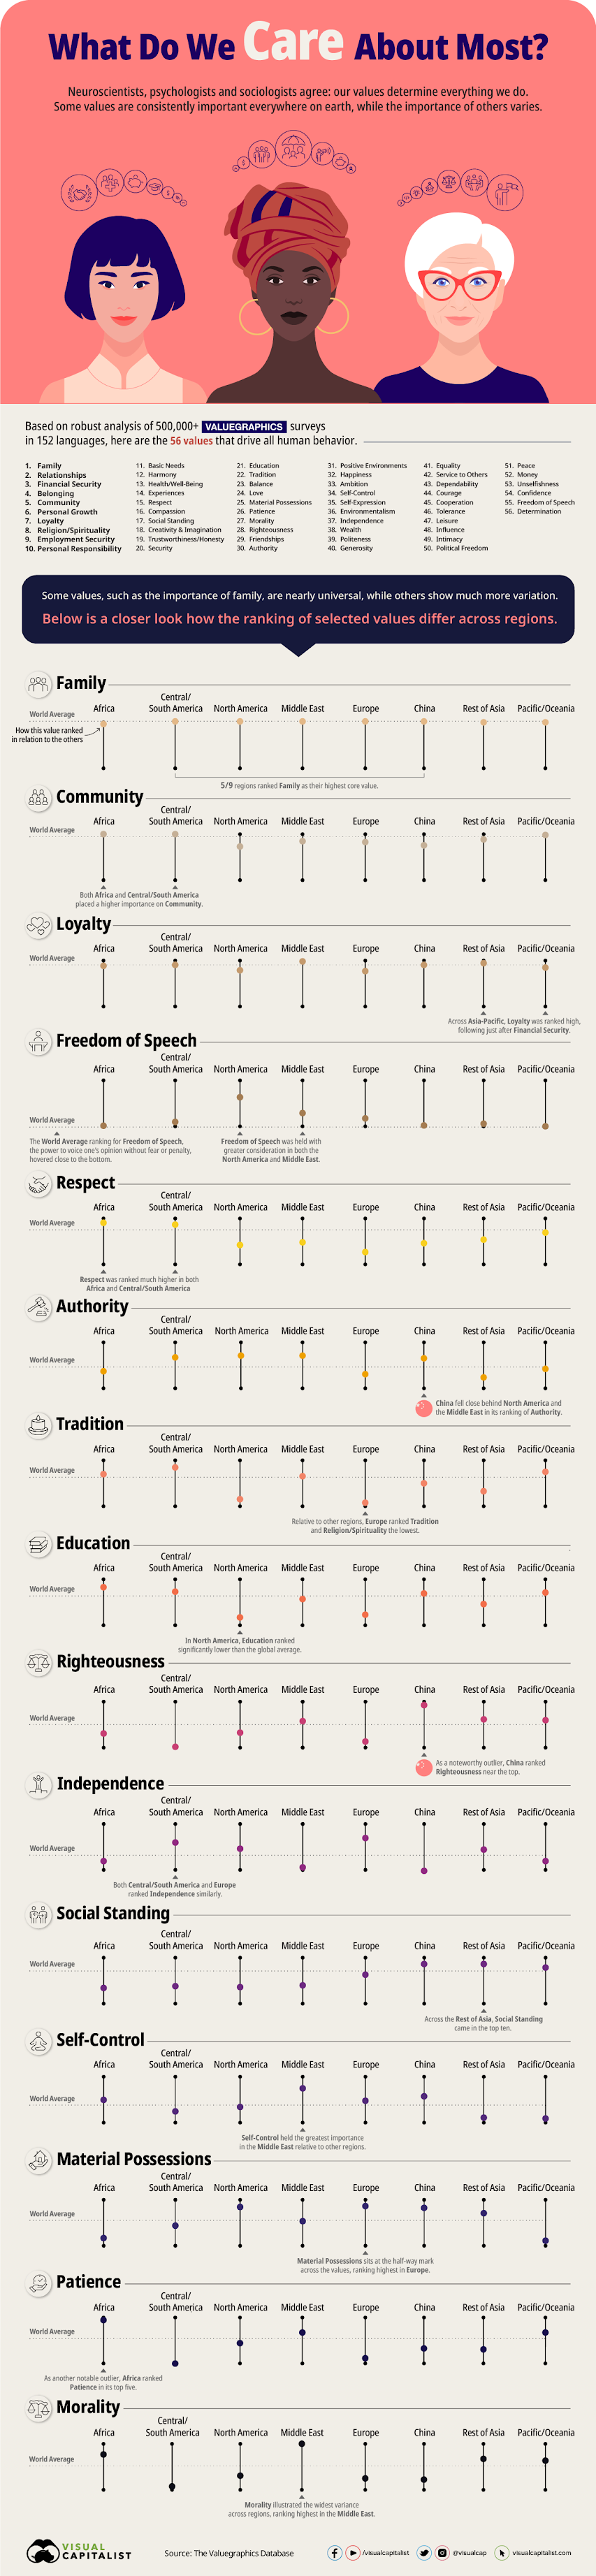 The World's Most Influential Values, In One Graphic #infographic #Leadership #World #Graphic